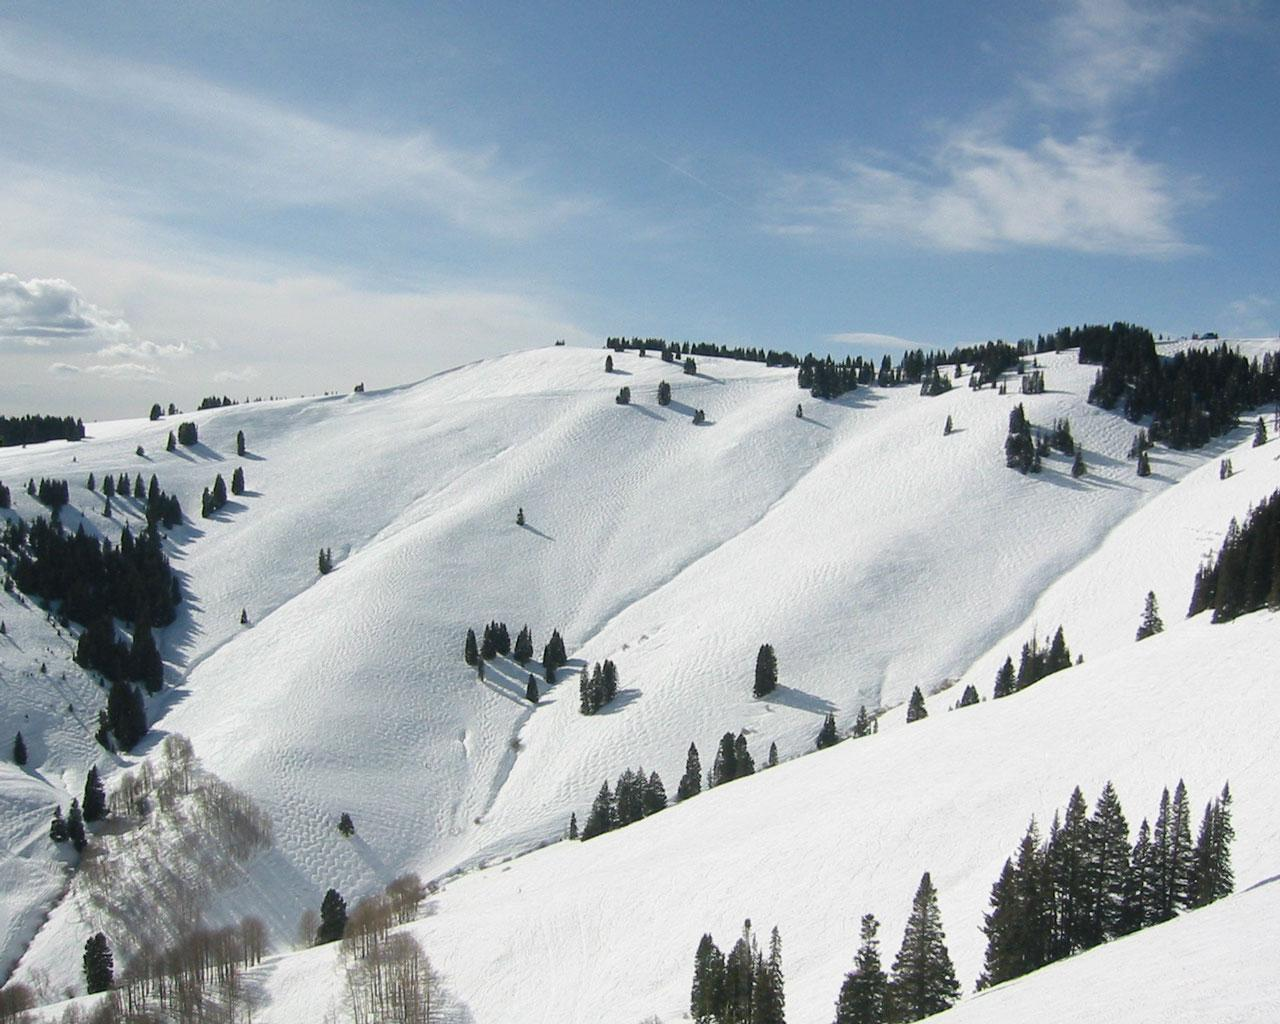 best ski resort - vail, colorado 1280x1024 wallpaper #2